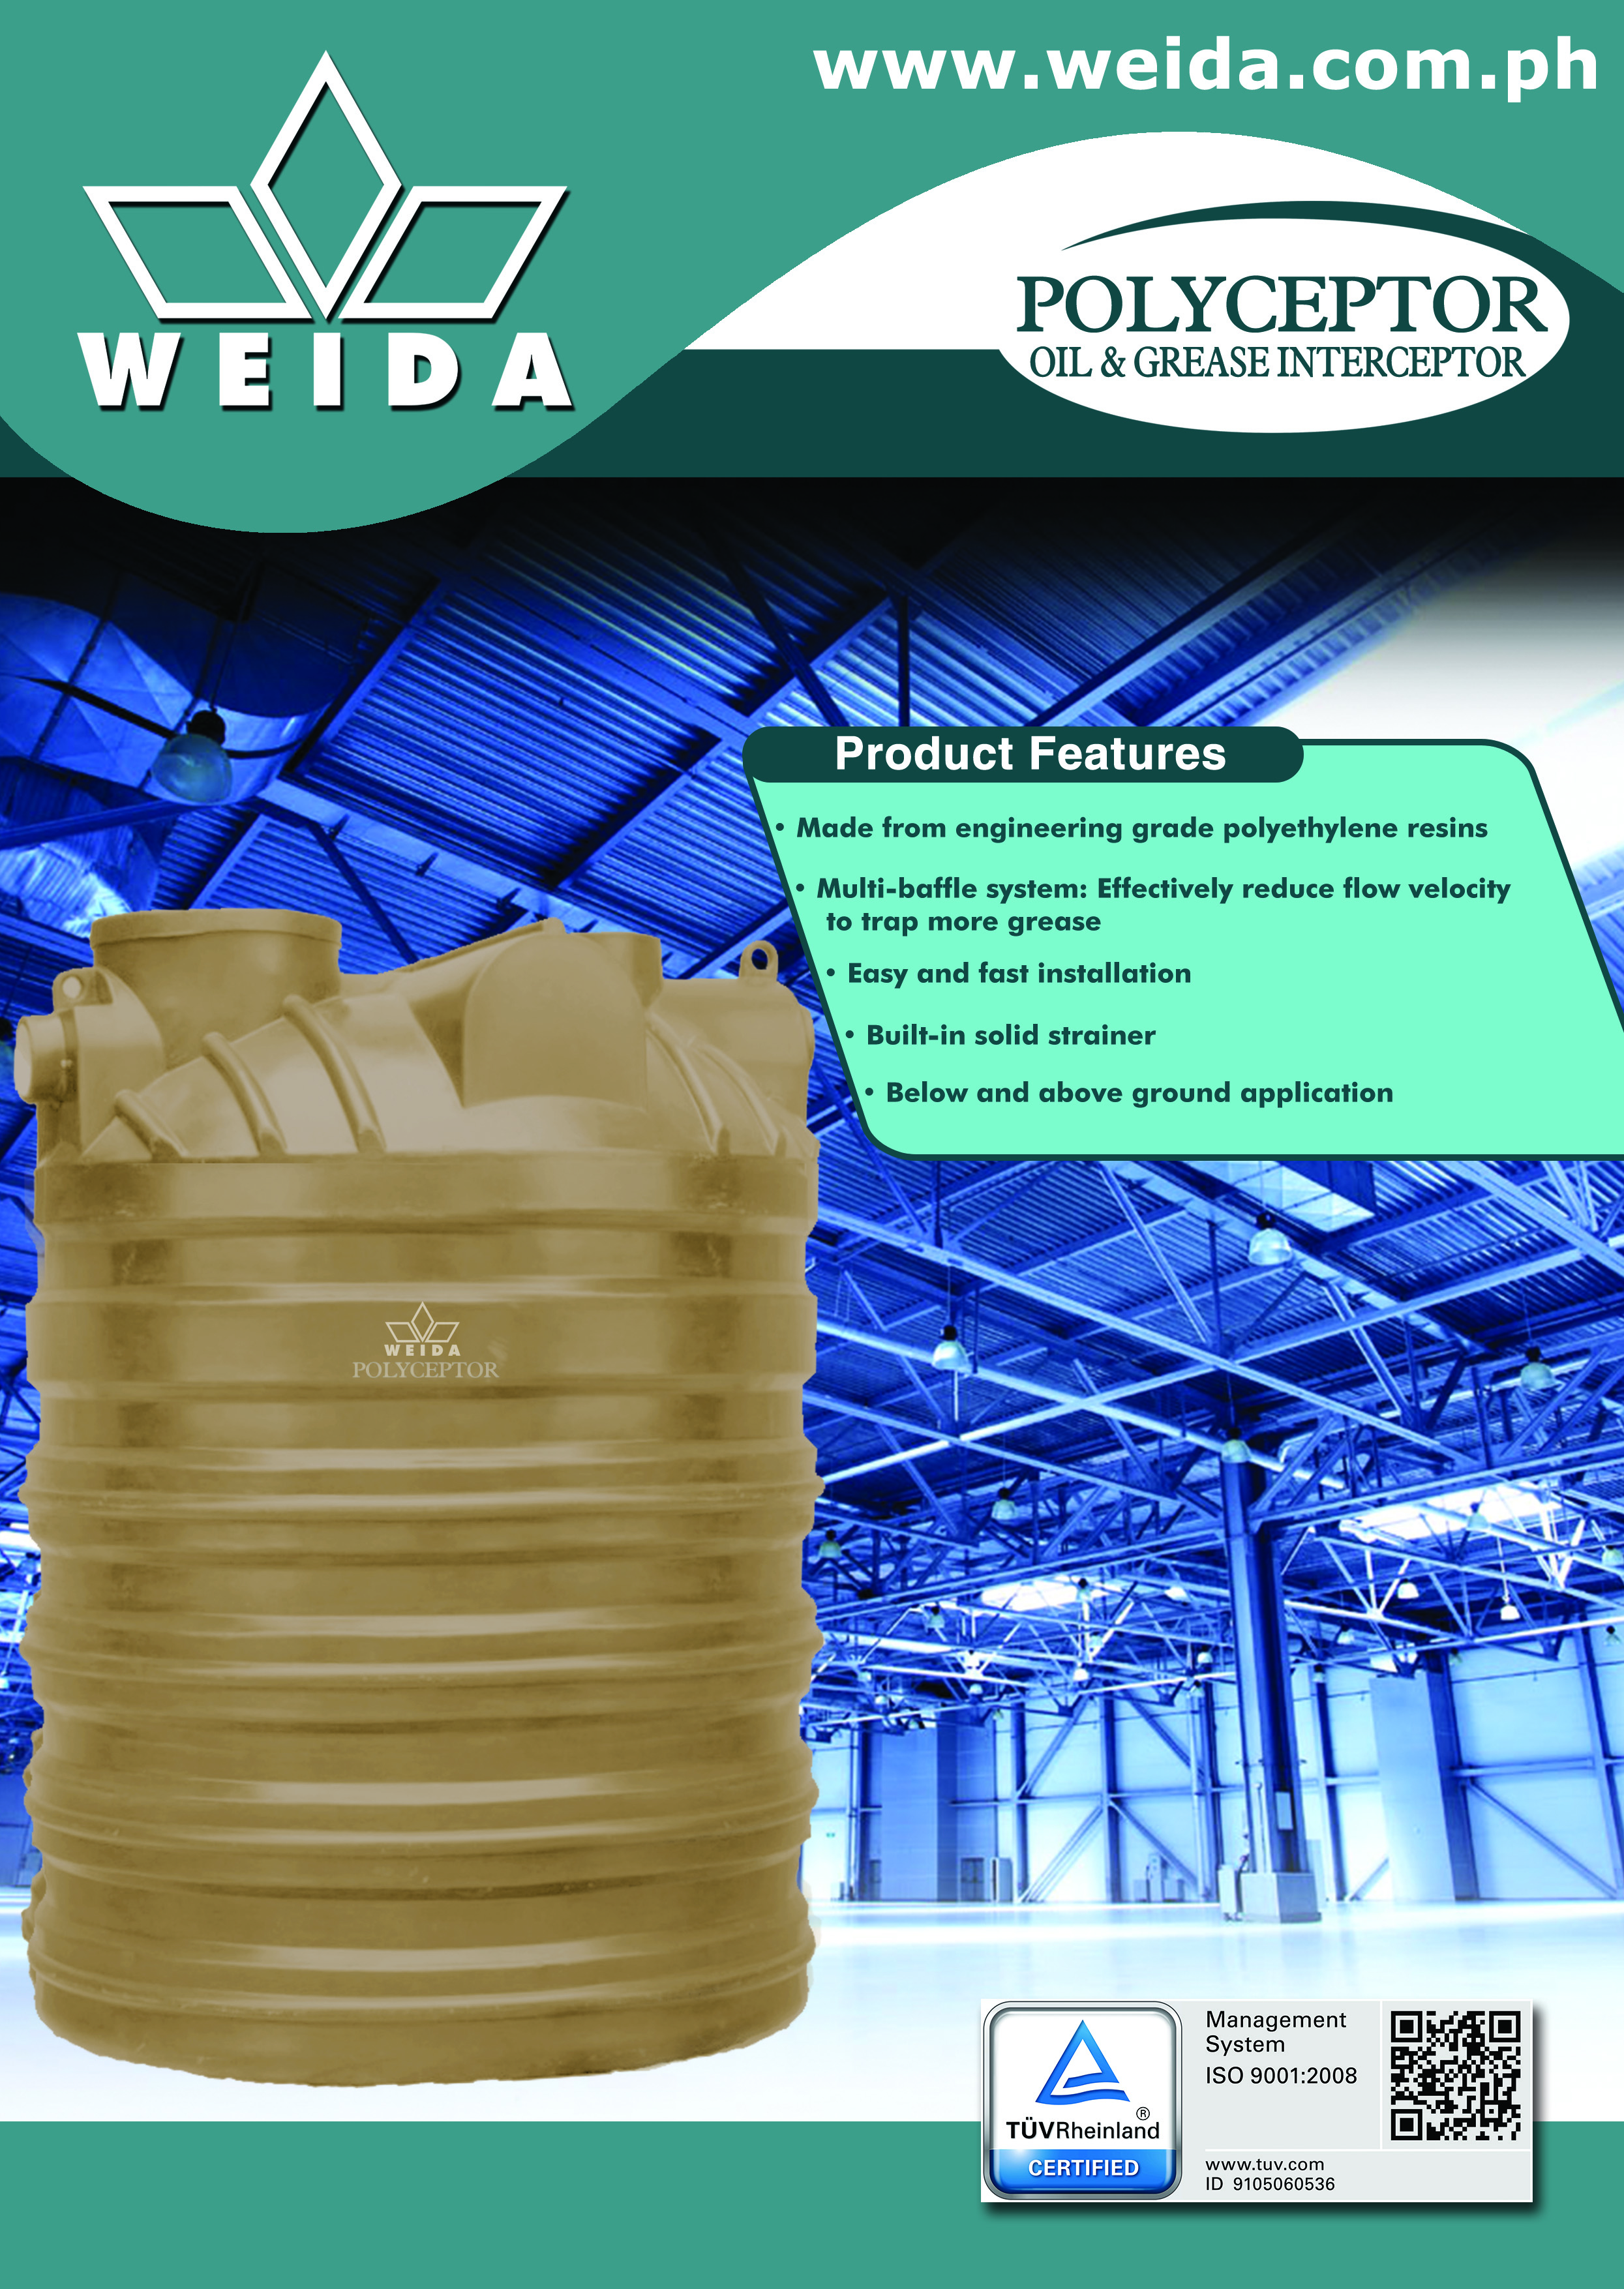 Wastewater Products Weida Philippines Inc